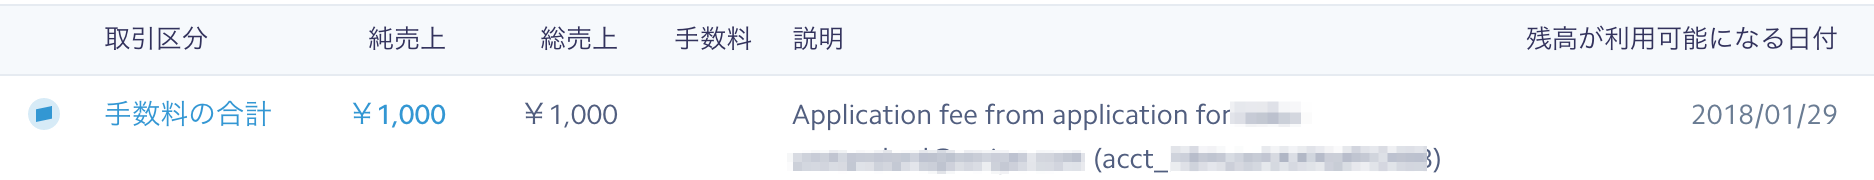 Platform_ApplicationFee.png